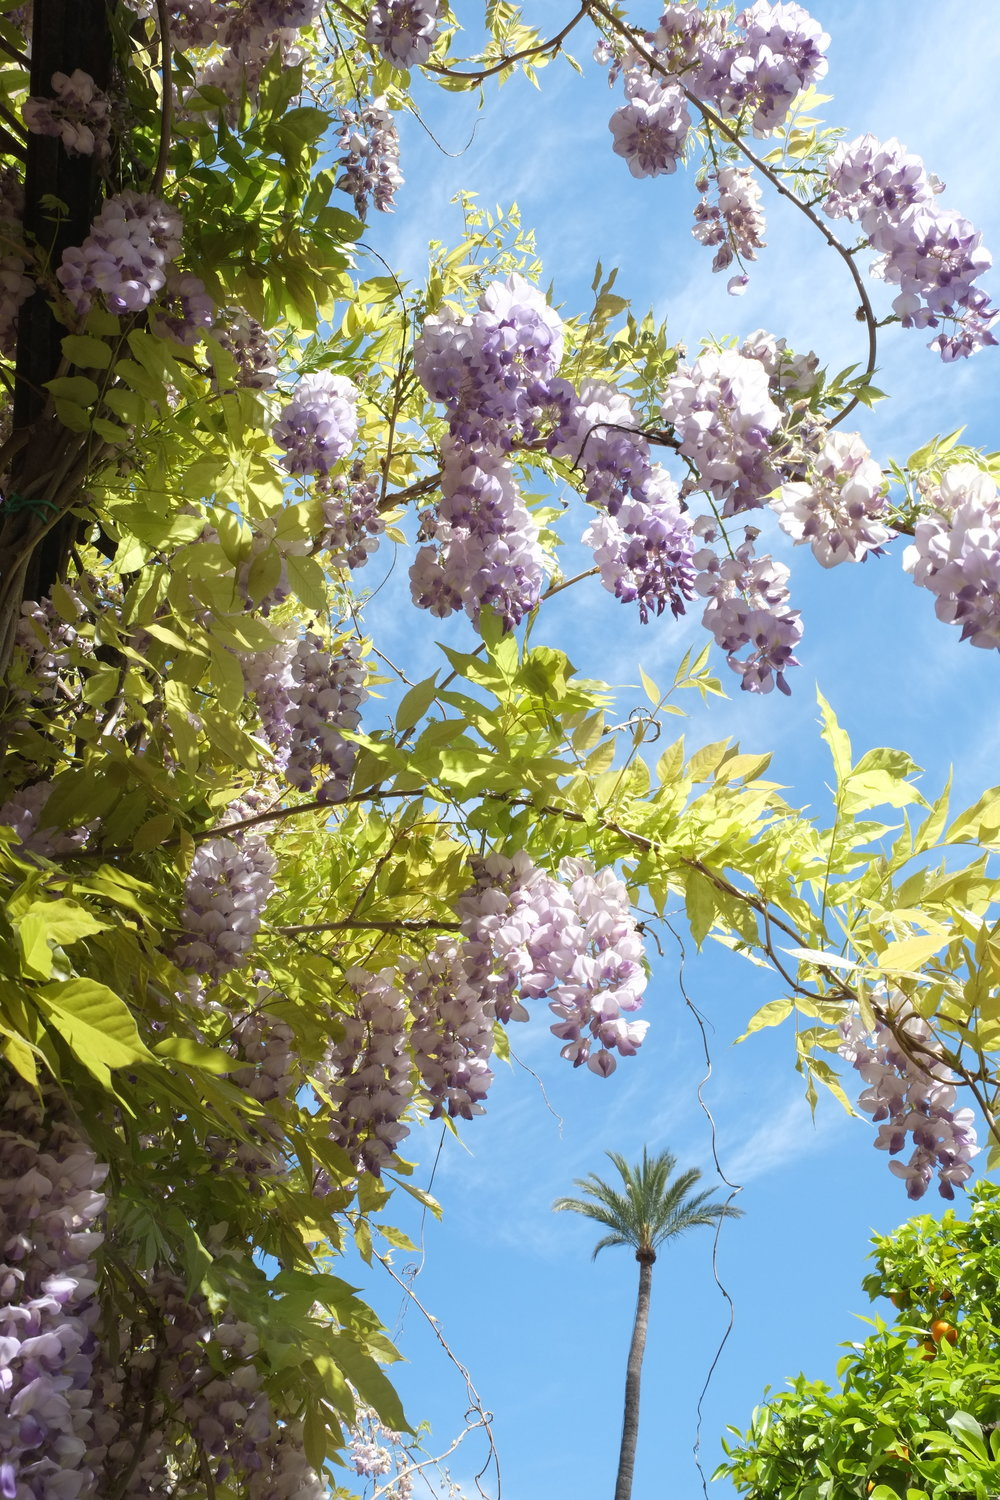 Wisteria at Real Alcazar